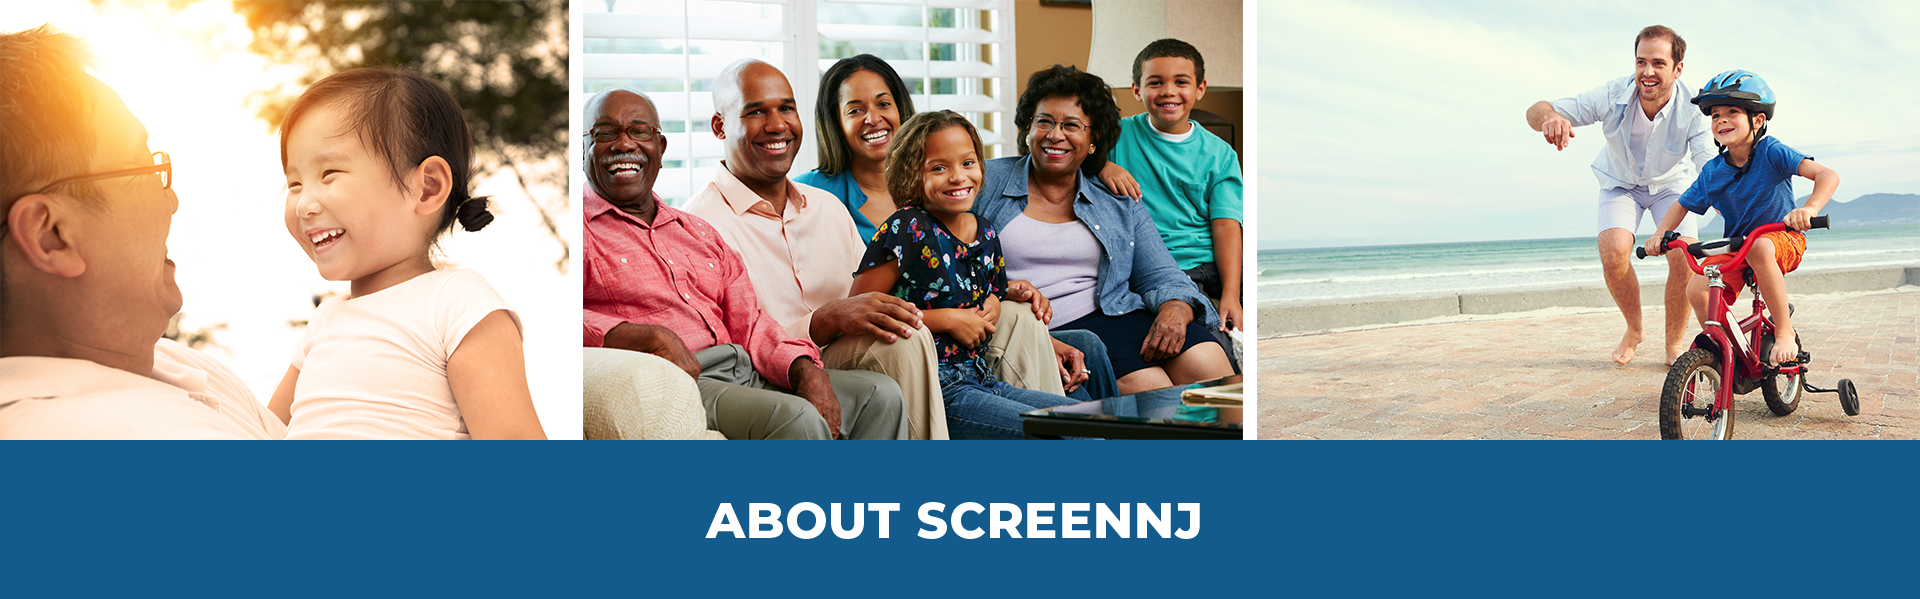 About ScreenNJ header graphic.